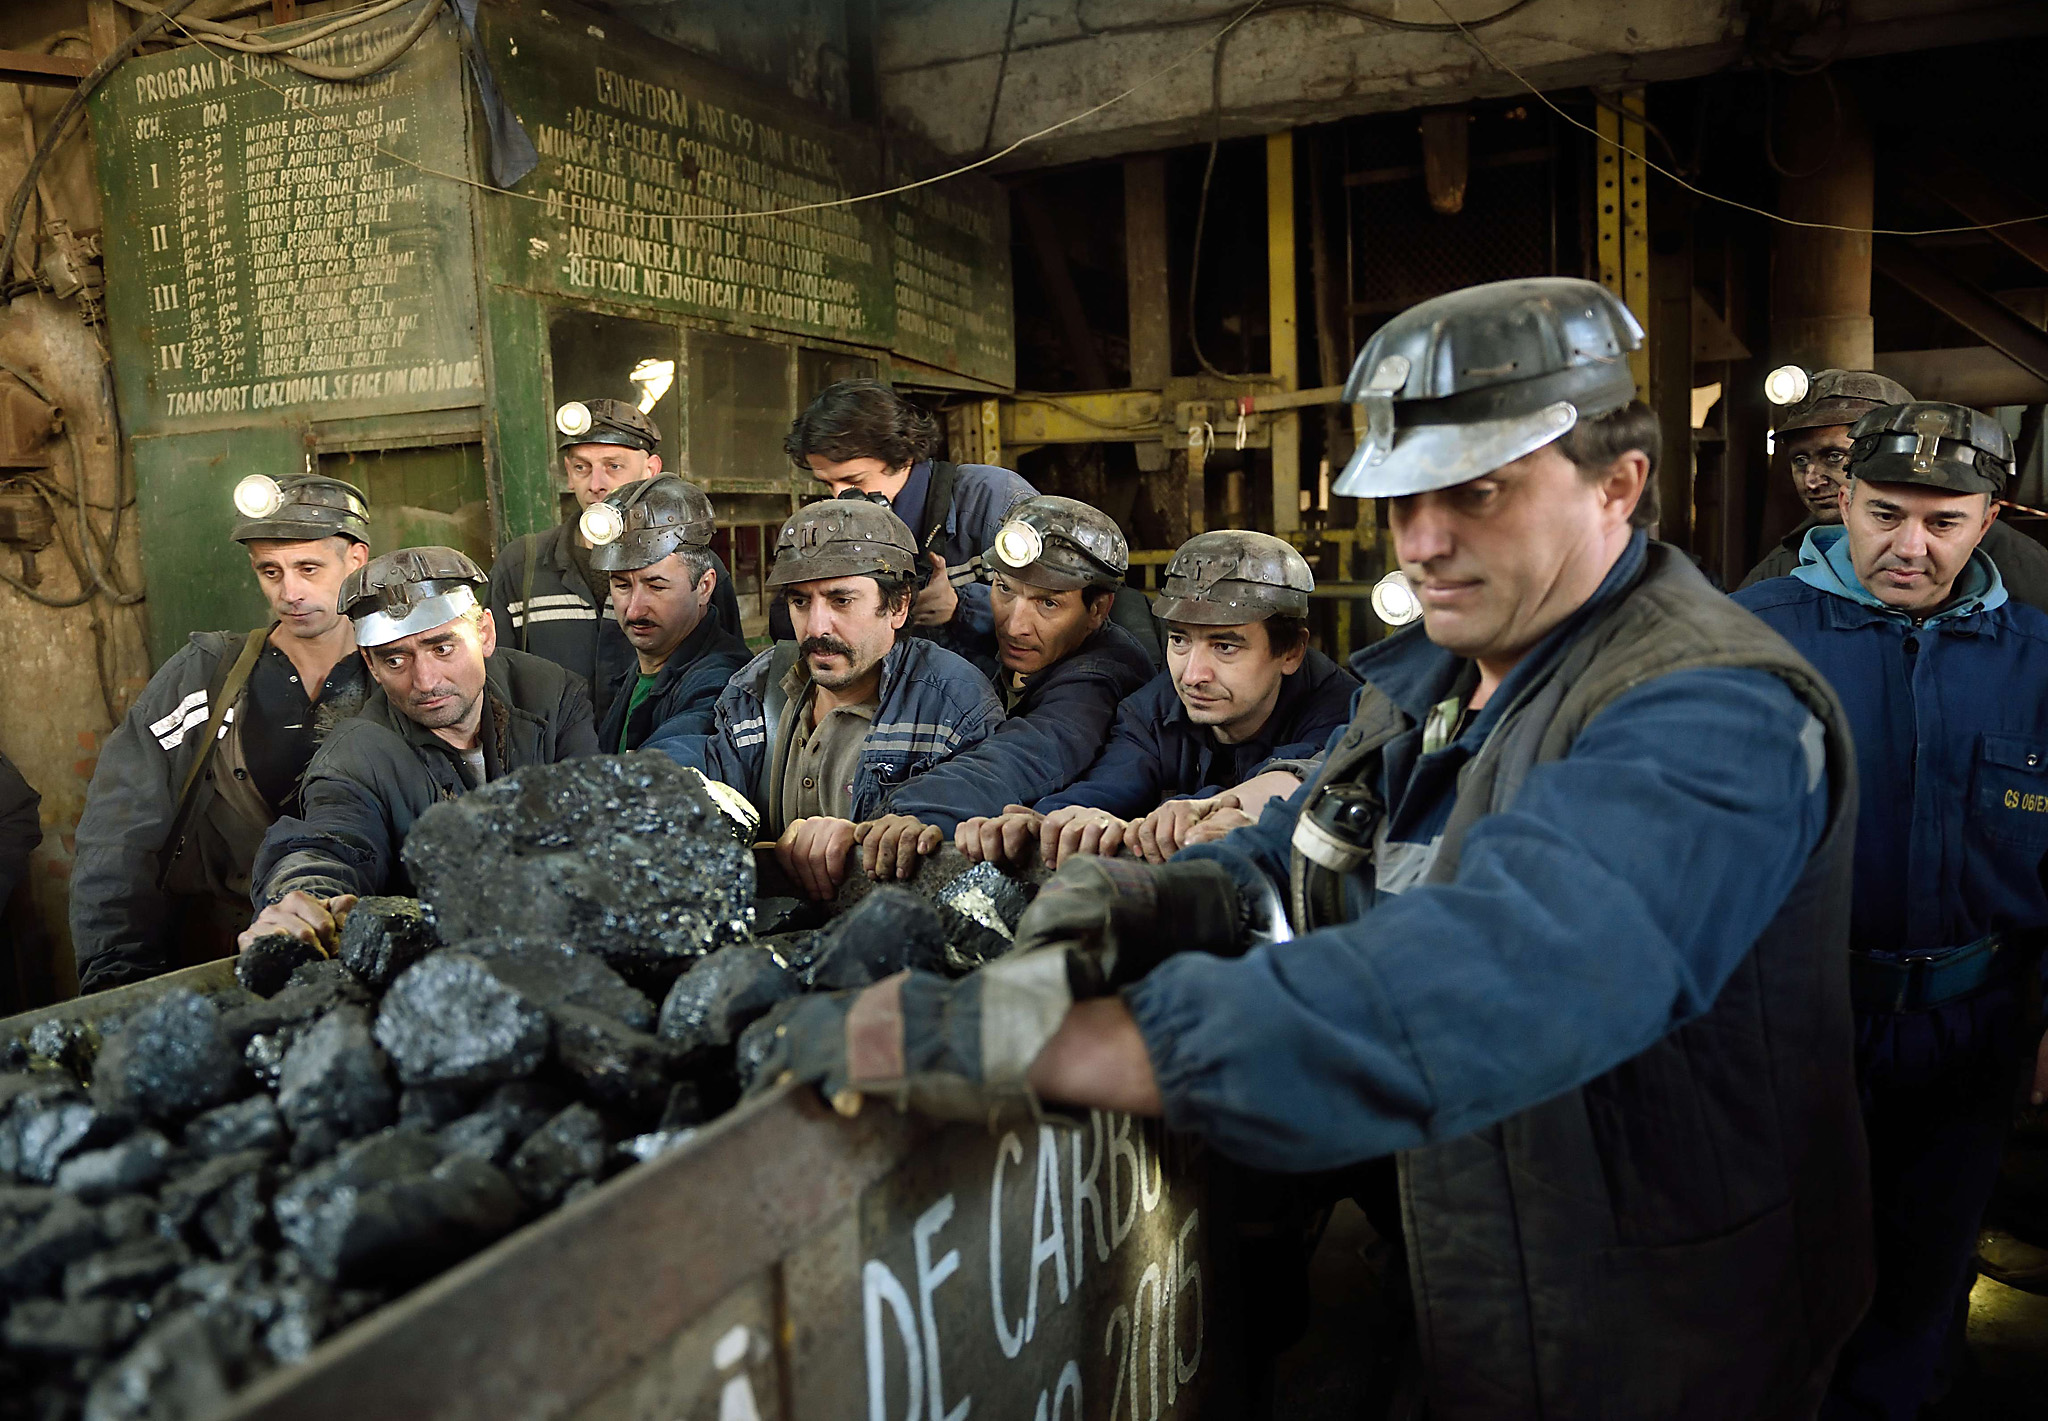 Miners push the last coal loaded mining ...Miners push the last coal loaded mining carriage at the end of their last shift at the coal mine in the Romanian city of Petrila, on October 30, 2015. Petrila, the oldest coal mine in Romania and deepest mine in Europe, that opened in 1859 under the Austro-Hungarian Empire, was closed on October 30, 2015 as part of Bucharest promises to liquidate unprofitable mines.  AFP PHOTO / DANIEL MIHAILESCUDANIEL MIHAILESCU/AFP/Getty Images